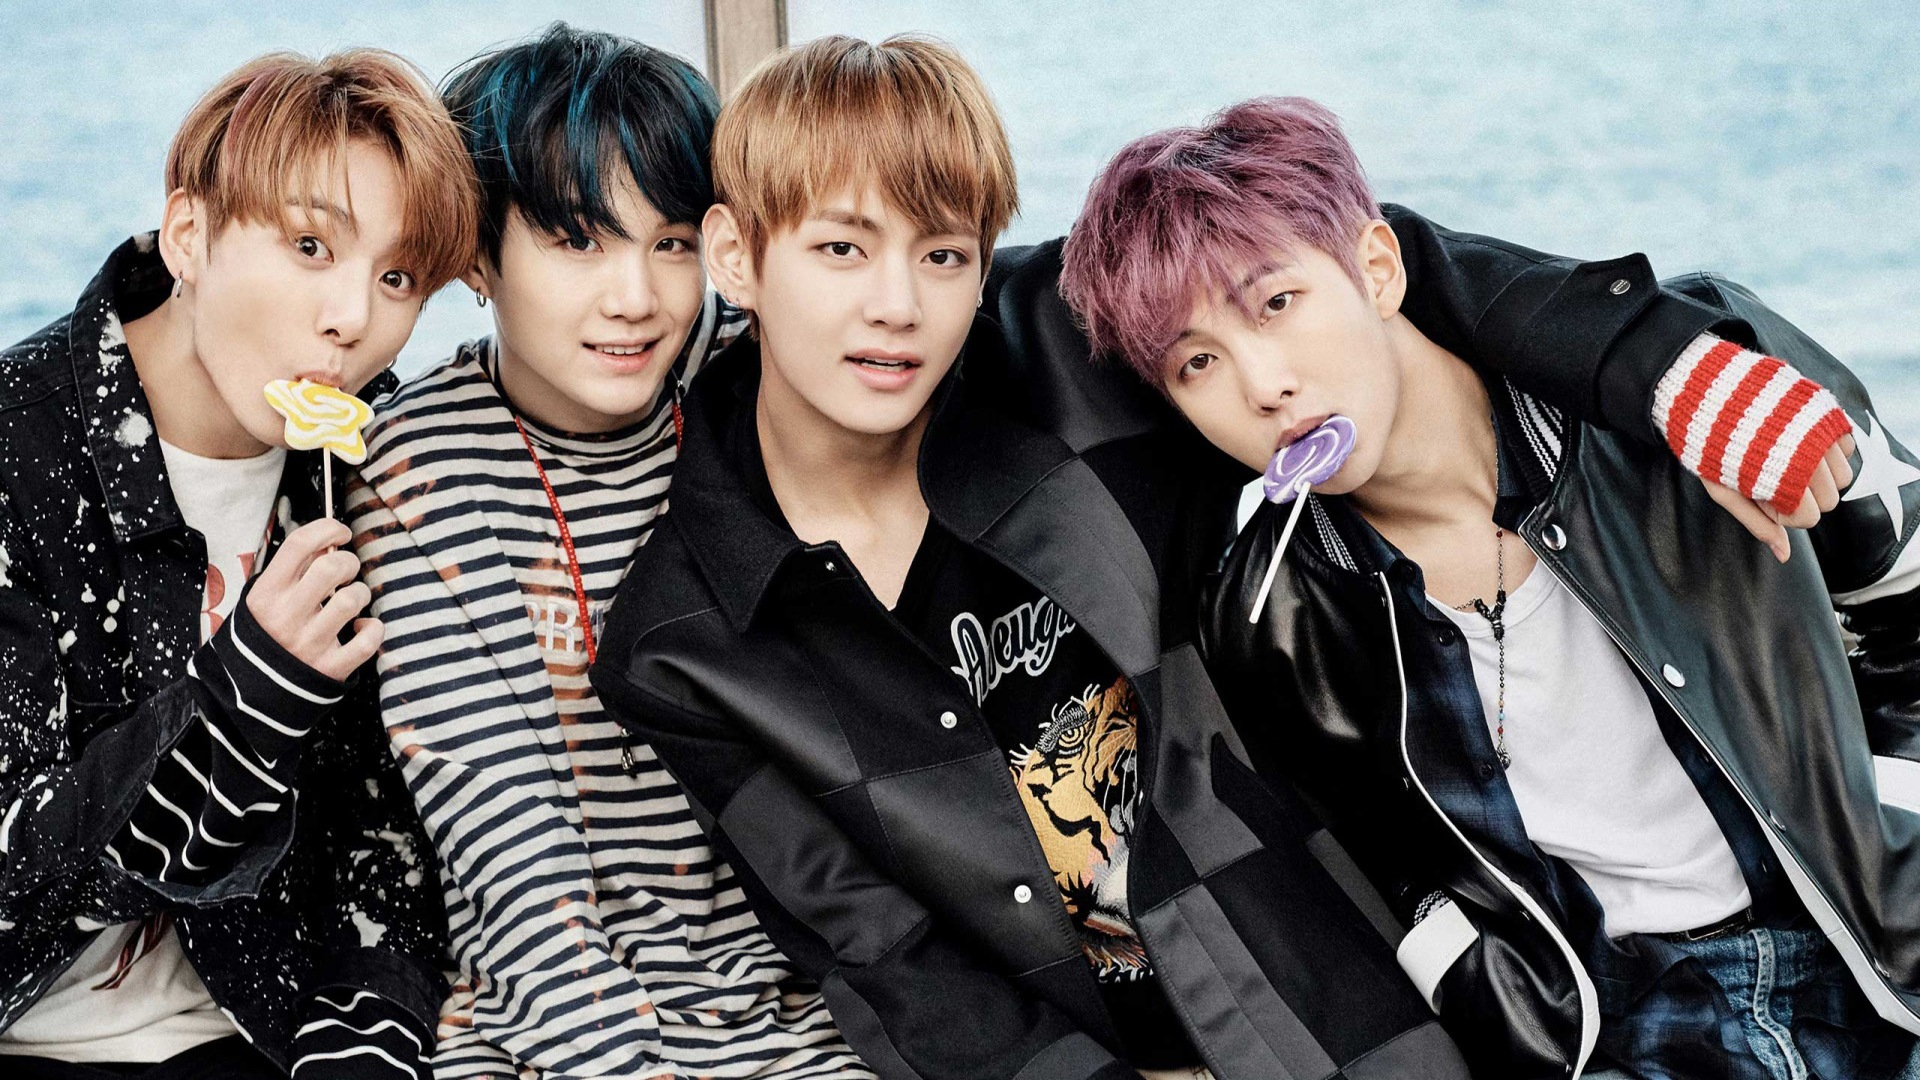 Tae, RM, Suga and Kookie